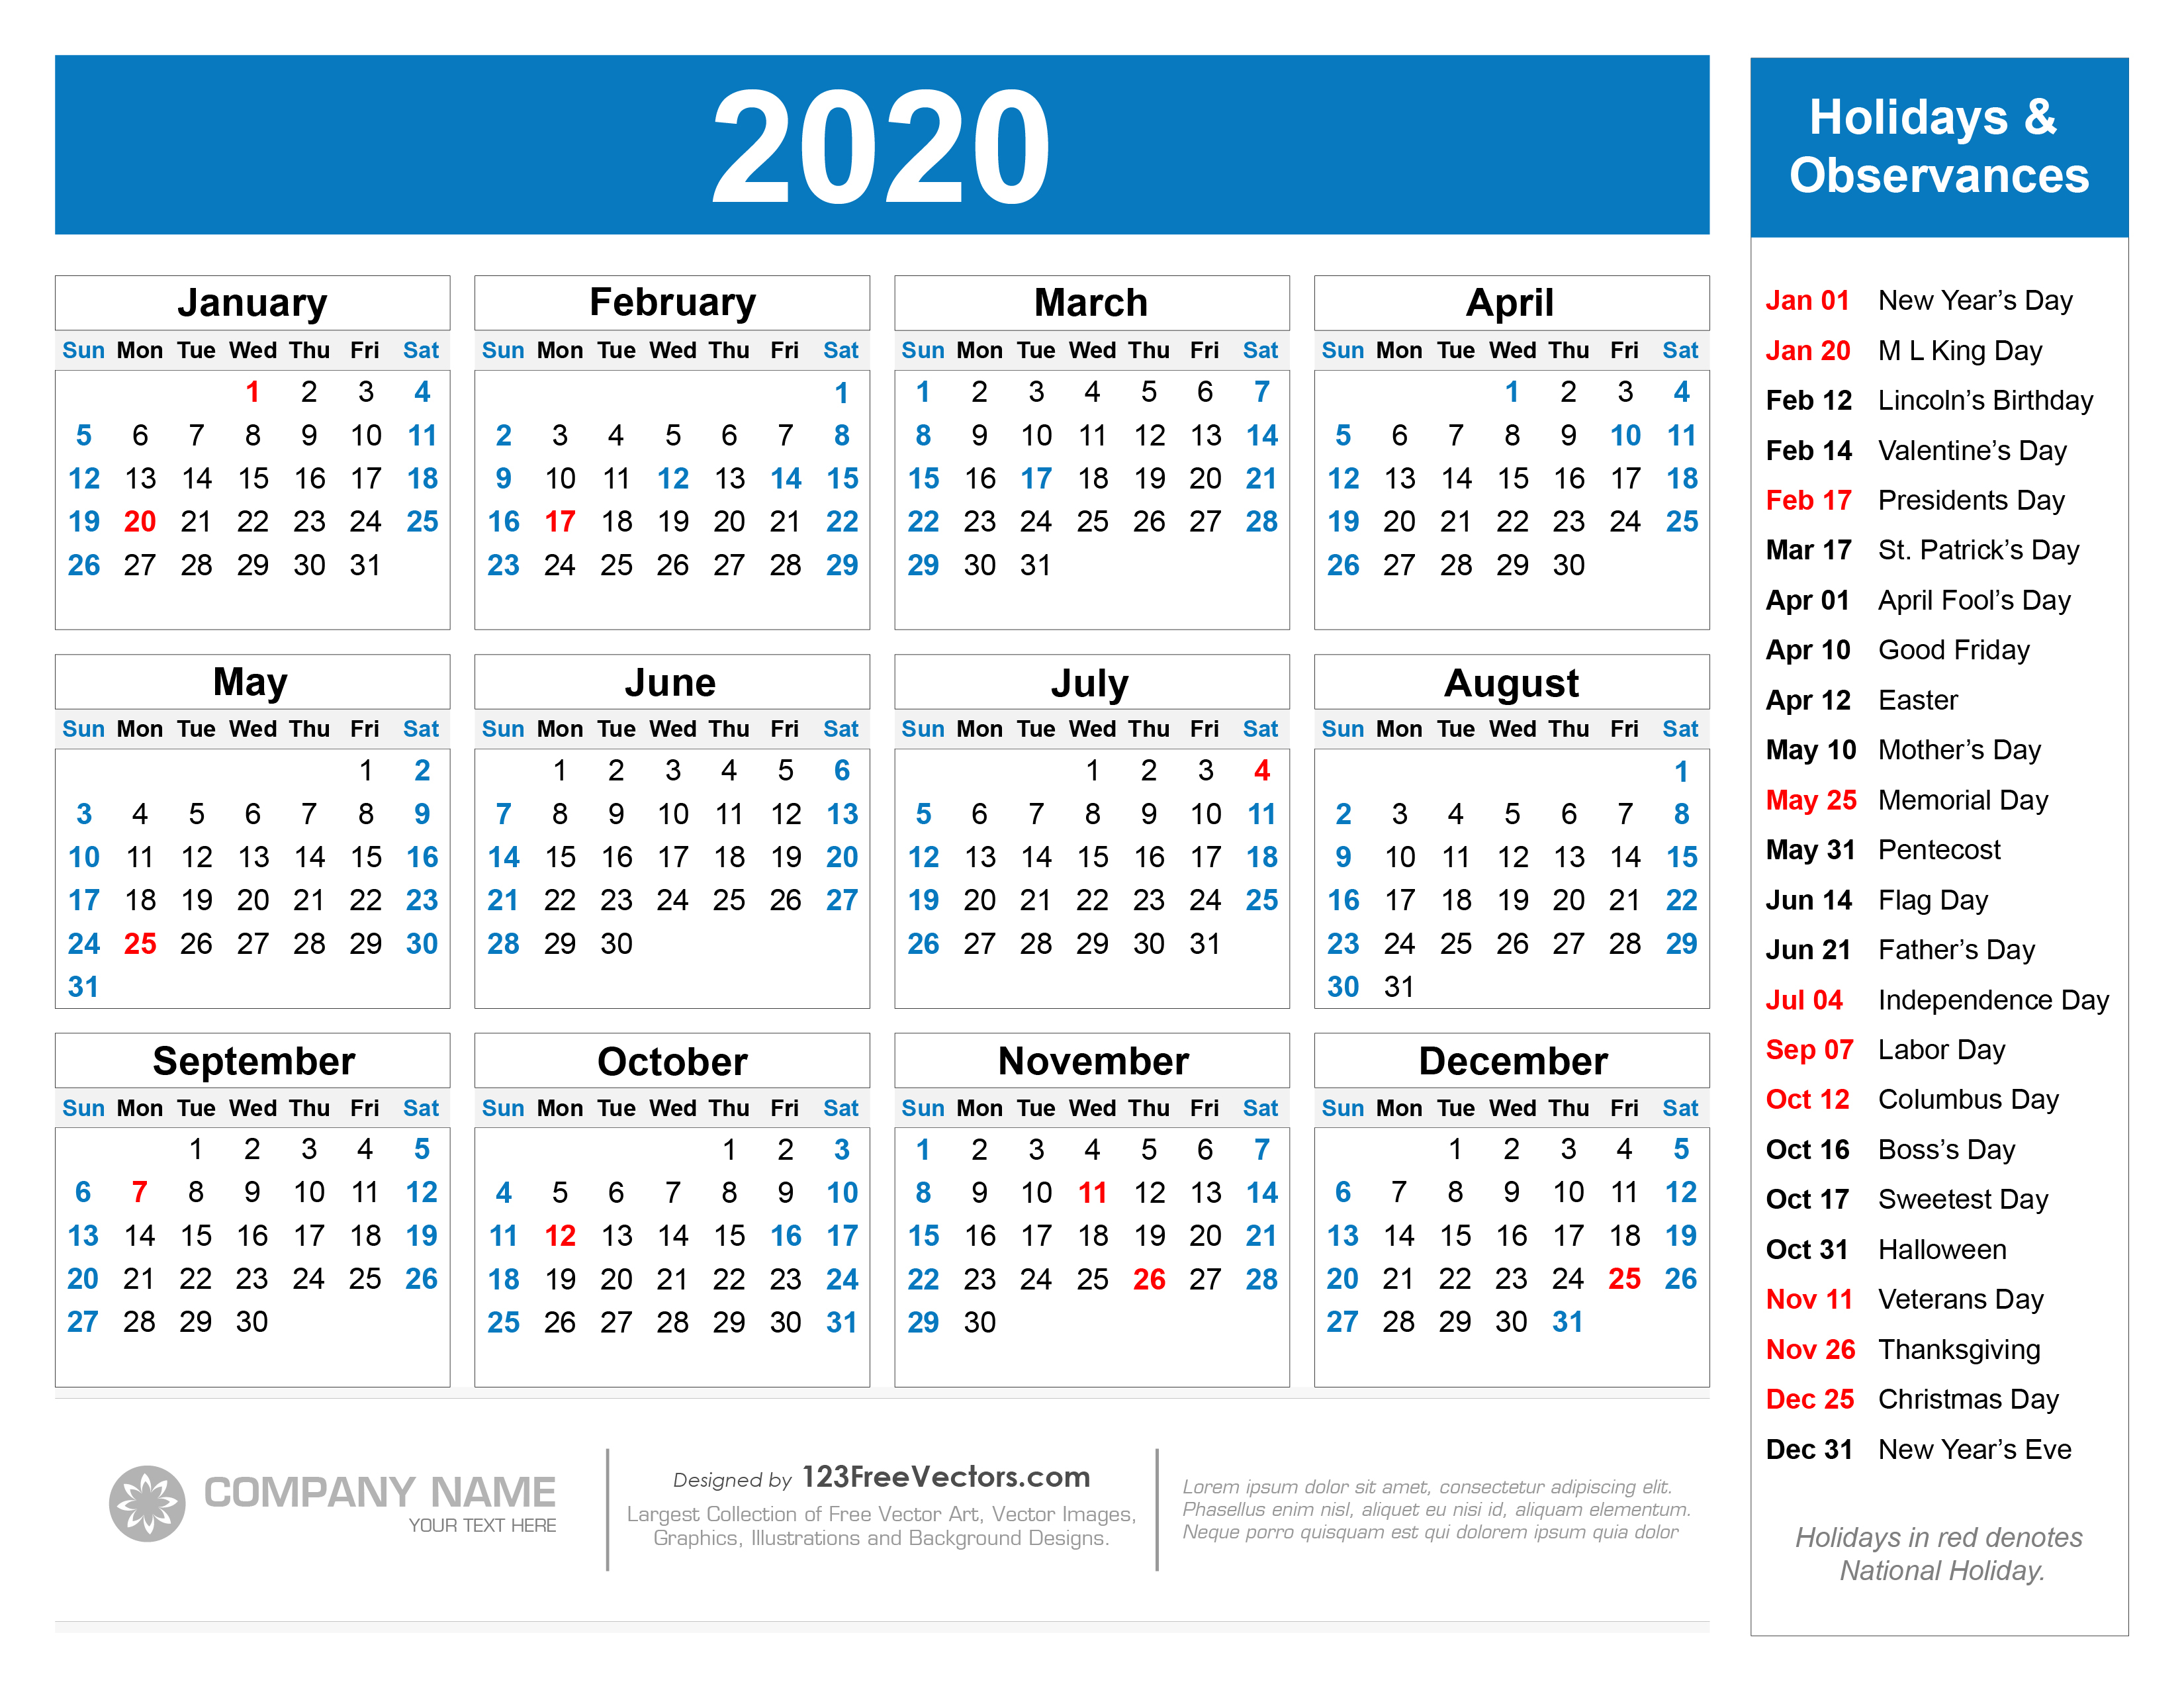 Free Printable 2020 Calendar With Holidays inside 2020 Yearly Calendar With Holidays Printable